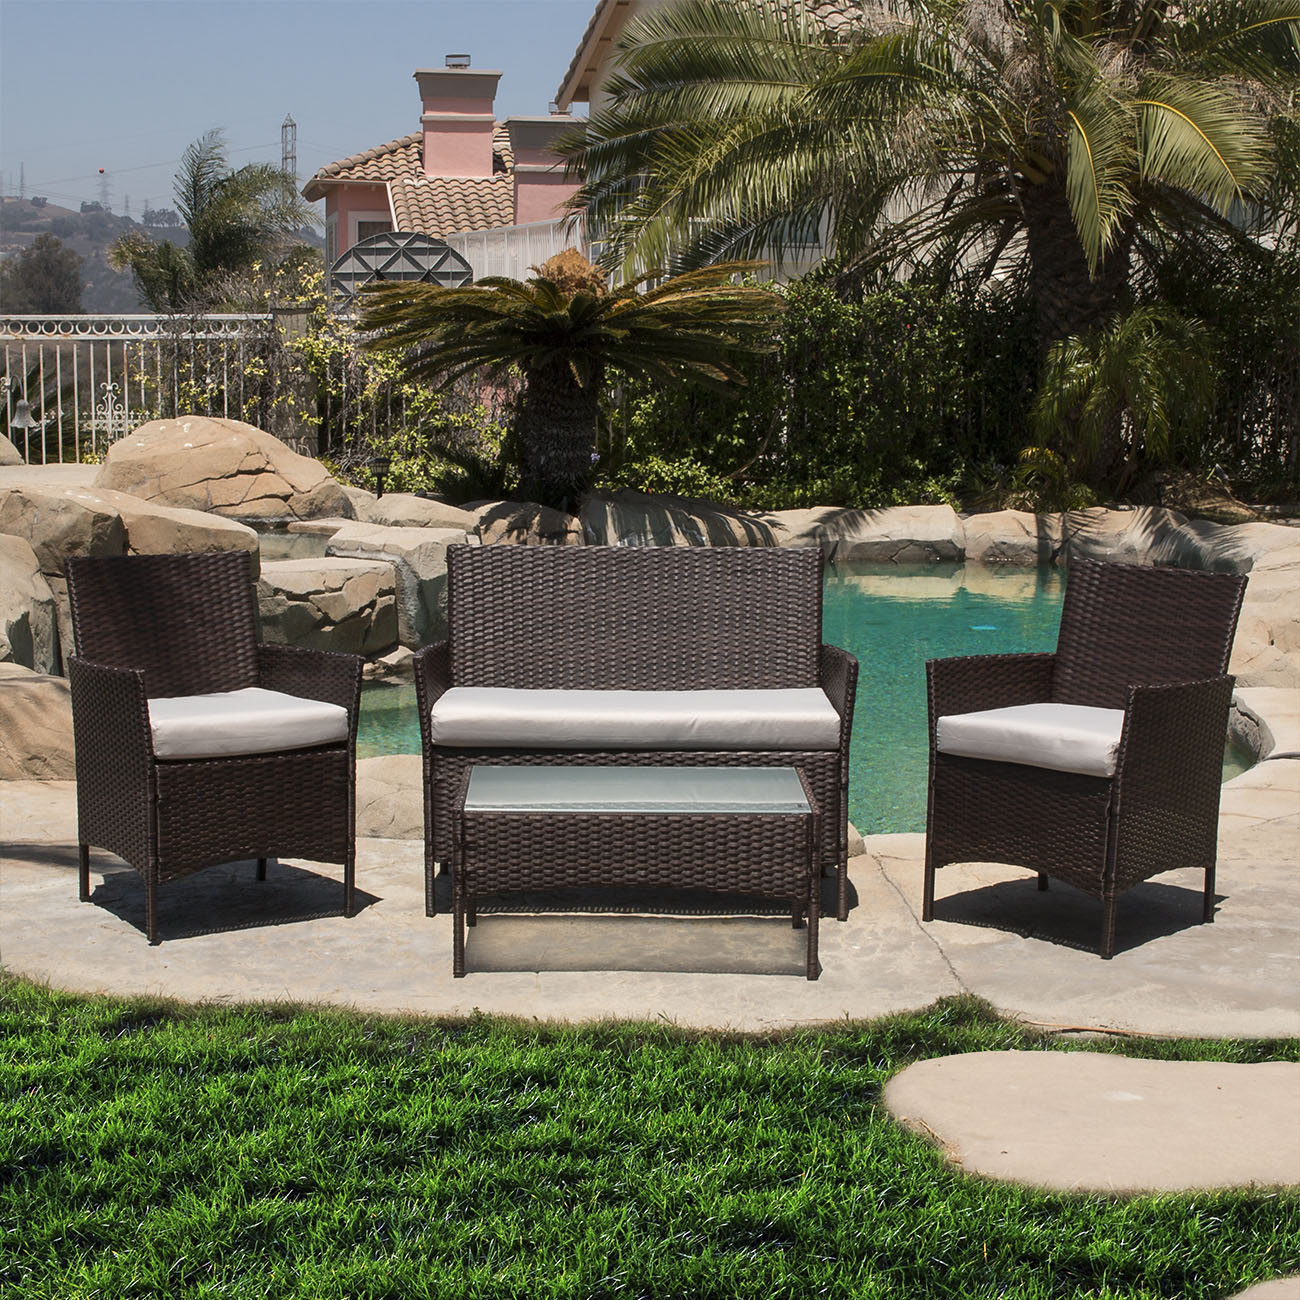 4 pc rattan furniture set outdoor patio garden sectional for Wicker patio furniture